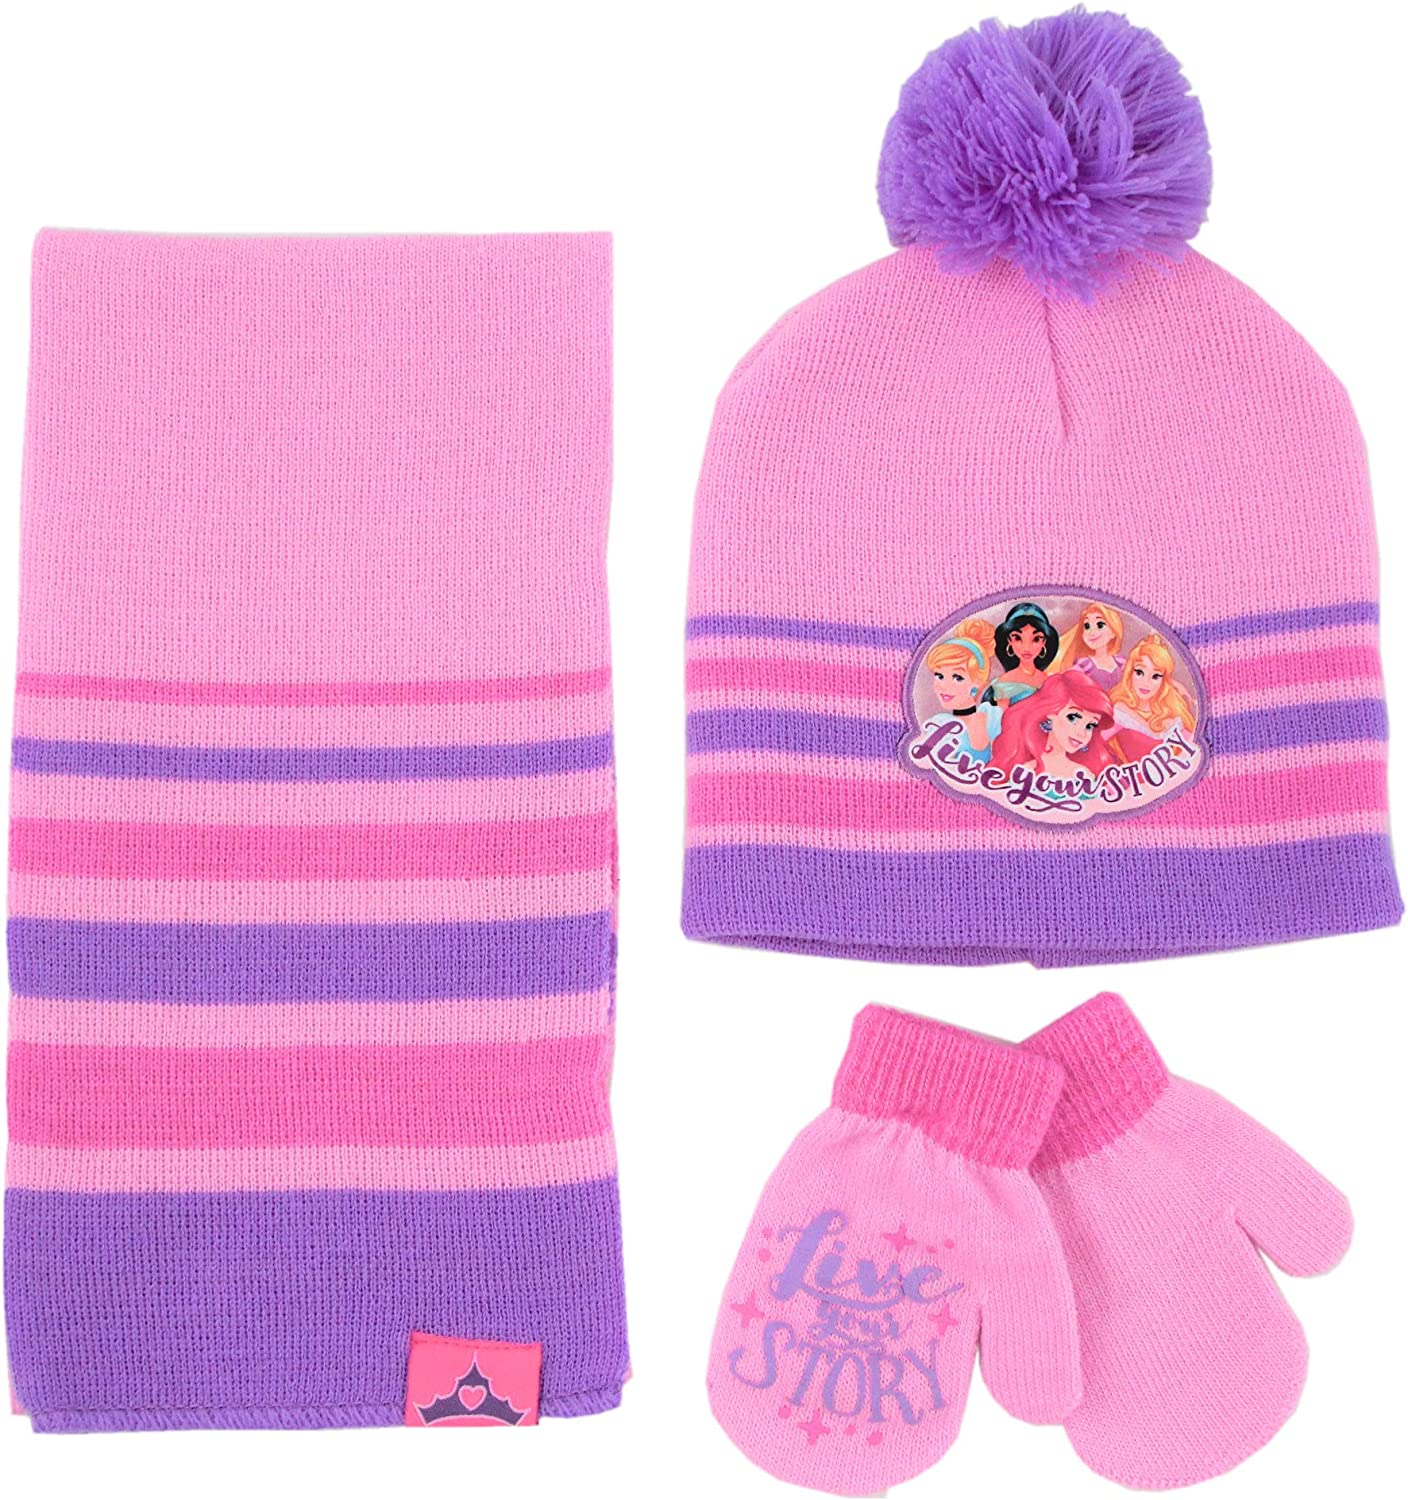 Disney Girls' Princess Hat, Scarf and Gloves or Mitten Cold Weather Set